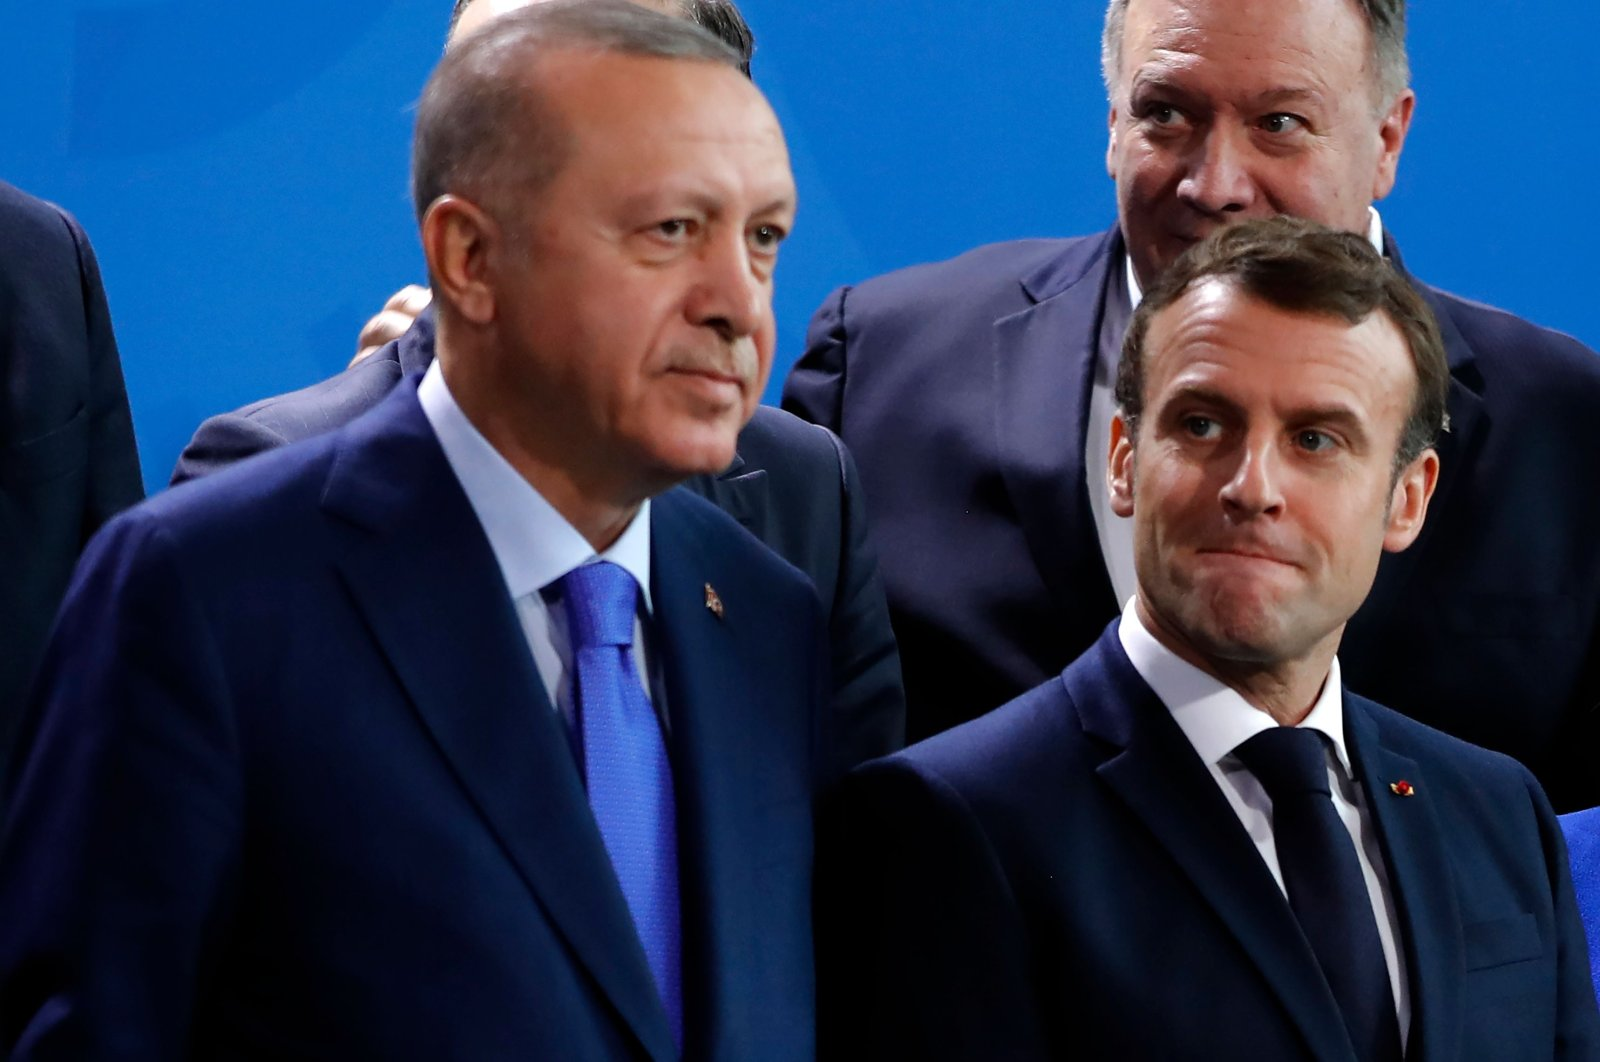 Turkish President Recep Tayyip Erdogan and French President Emmanuel Macron during a peace summit on Libya at the Chancellery in Berlin.